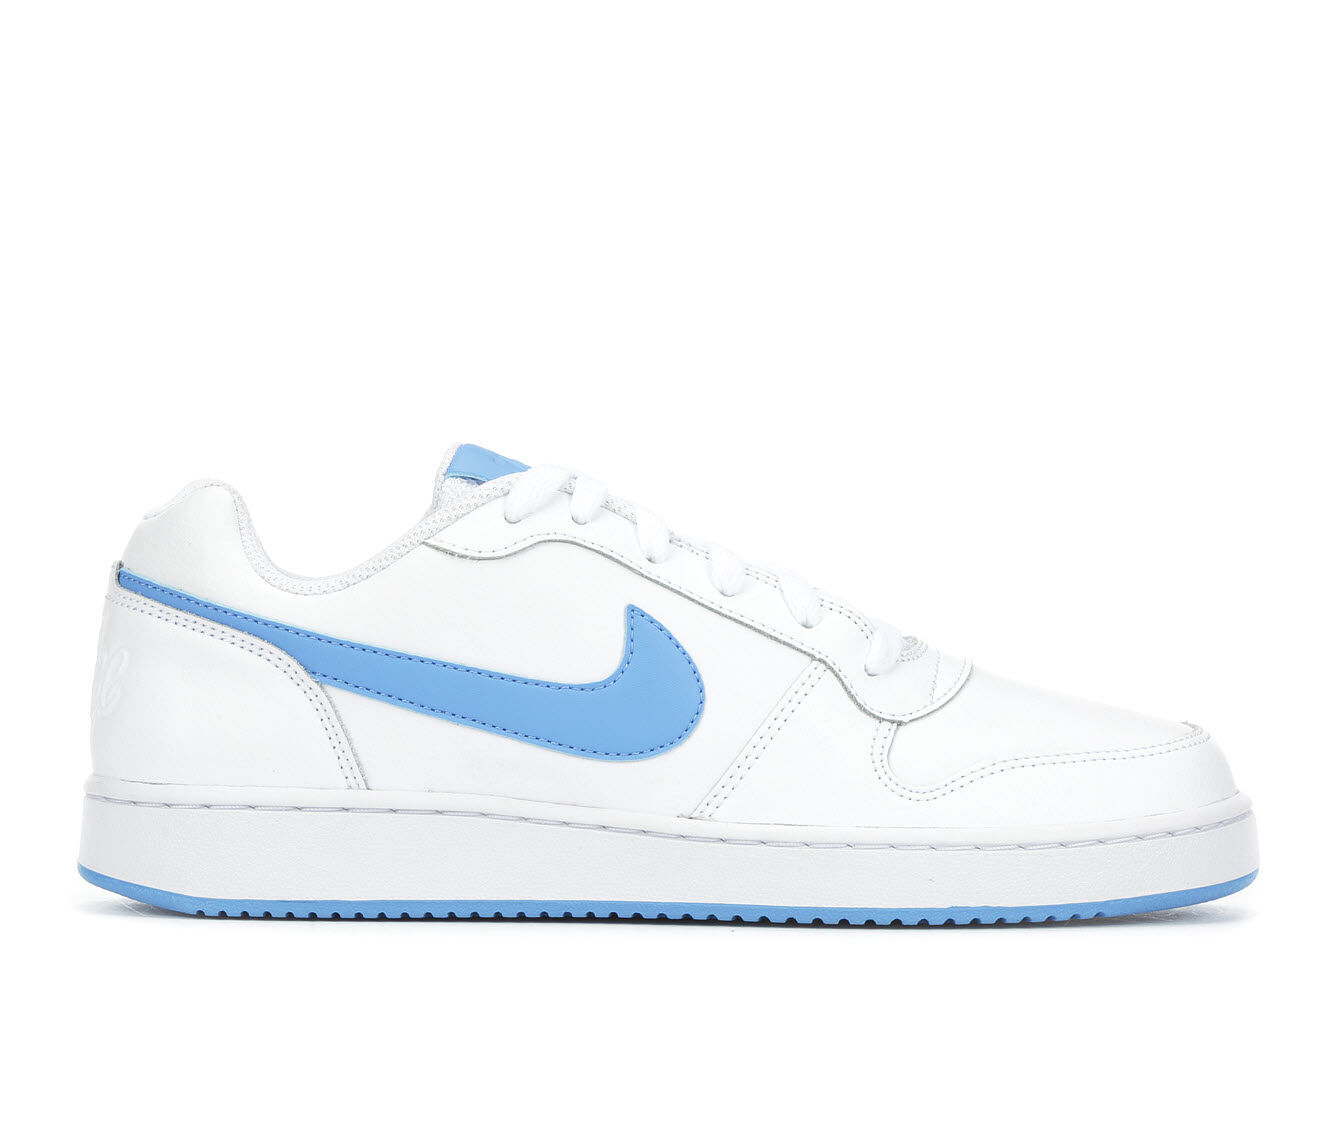 For Your Selection Men's Nike Ebernon Low Sneakers Wht/Blu 102